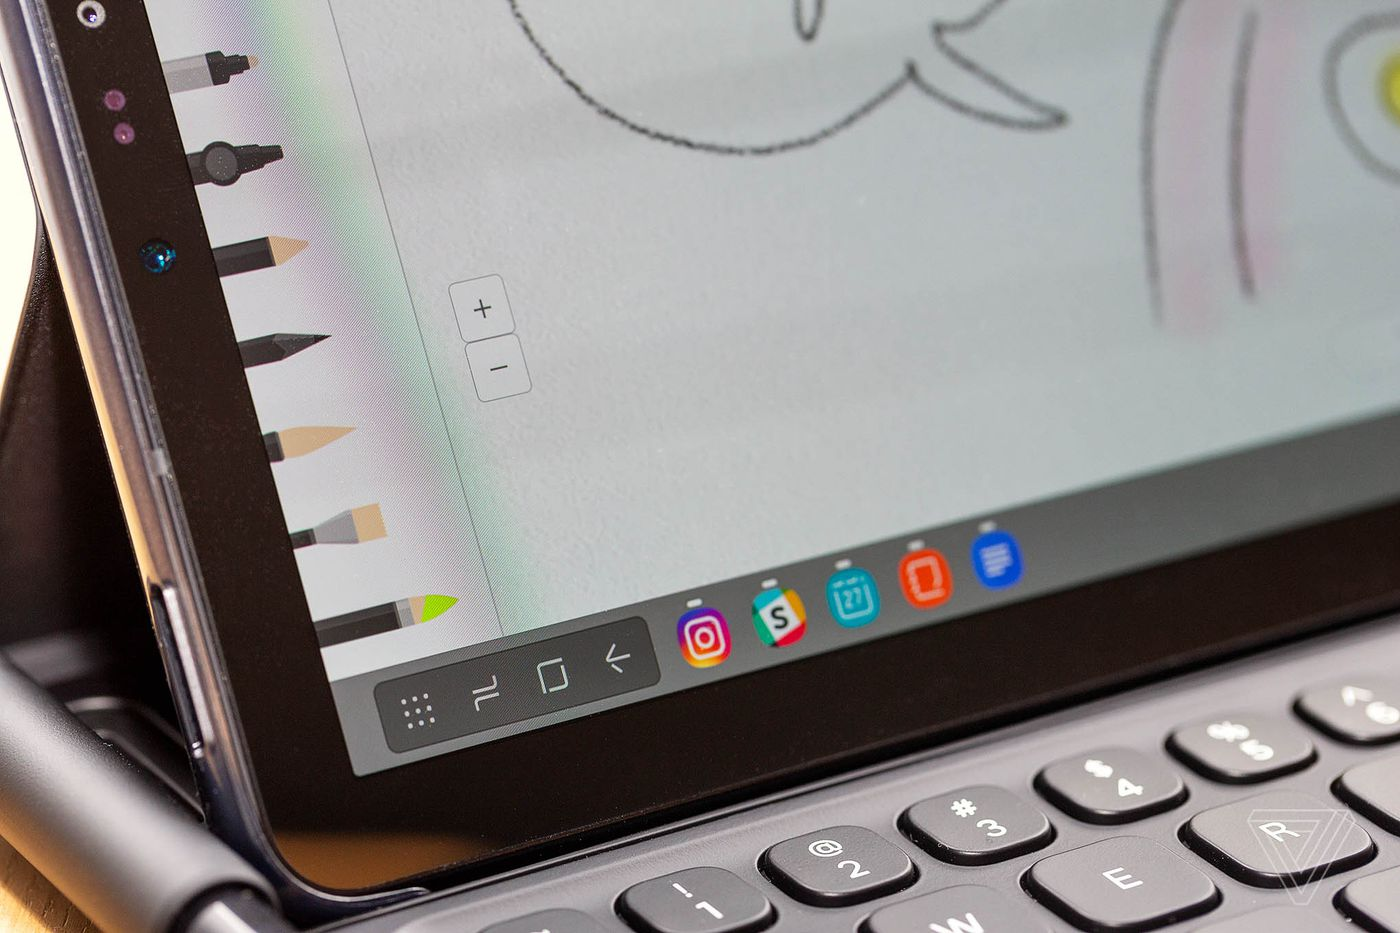 Samsung Galaxy Tab S4 review: valiant effort - The Verge